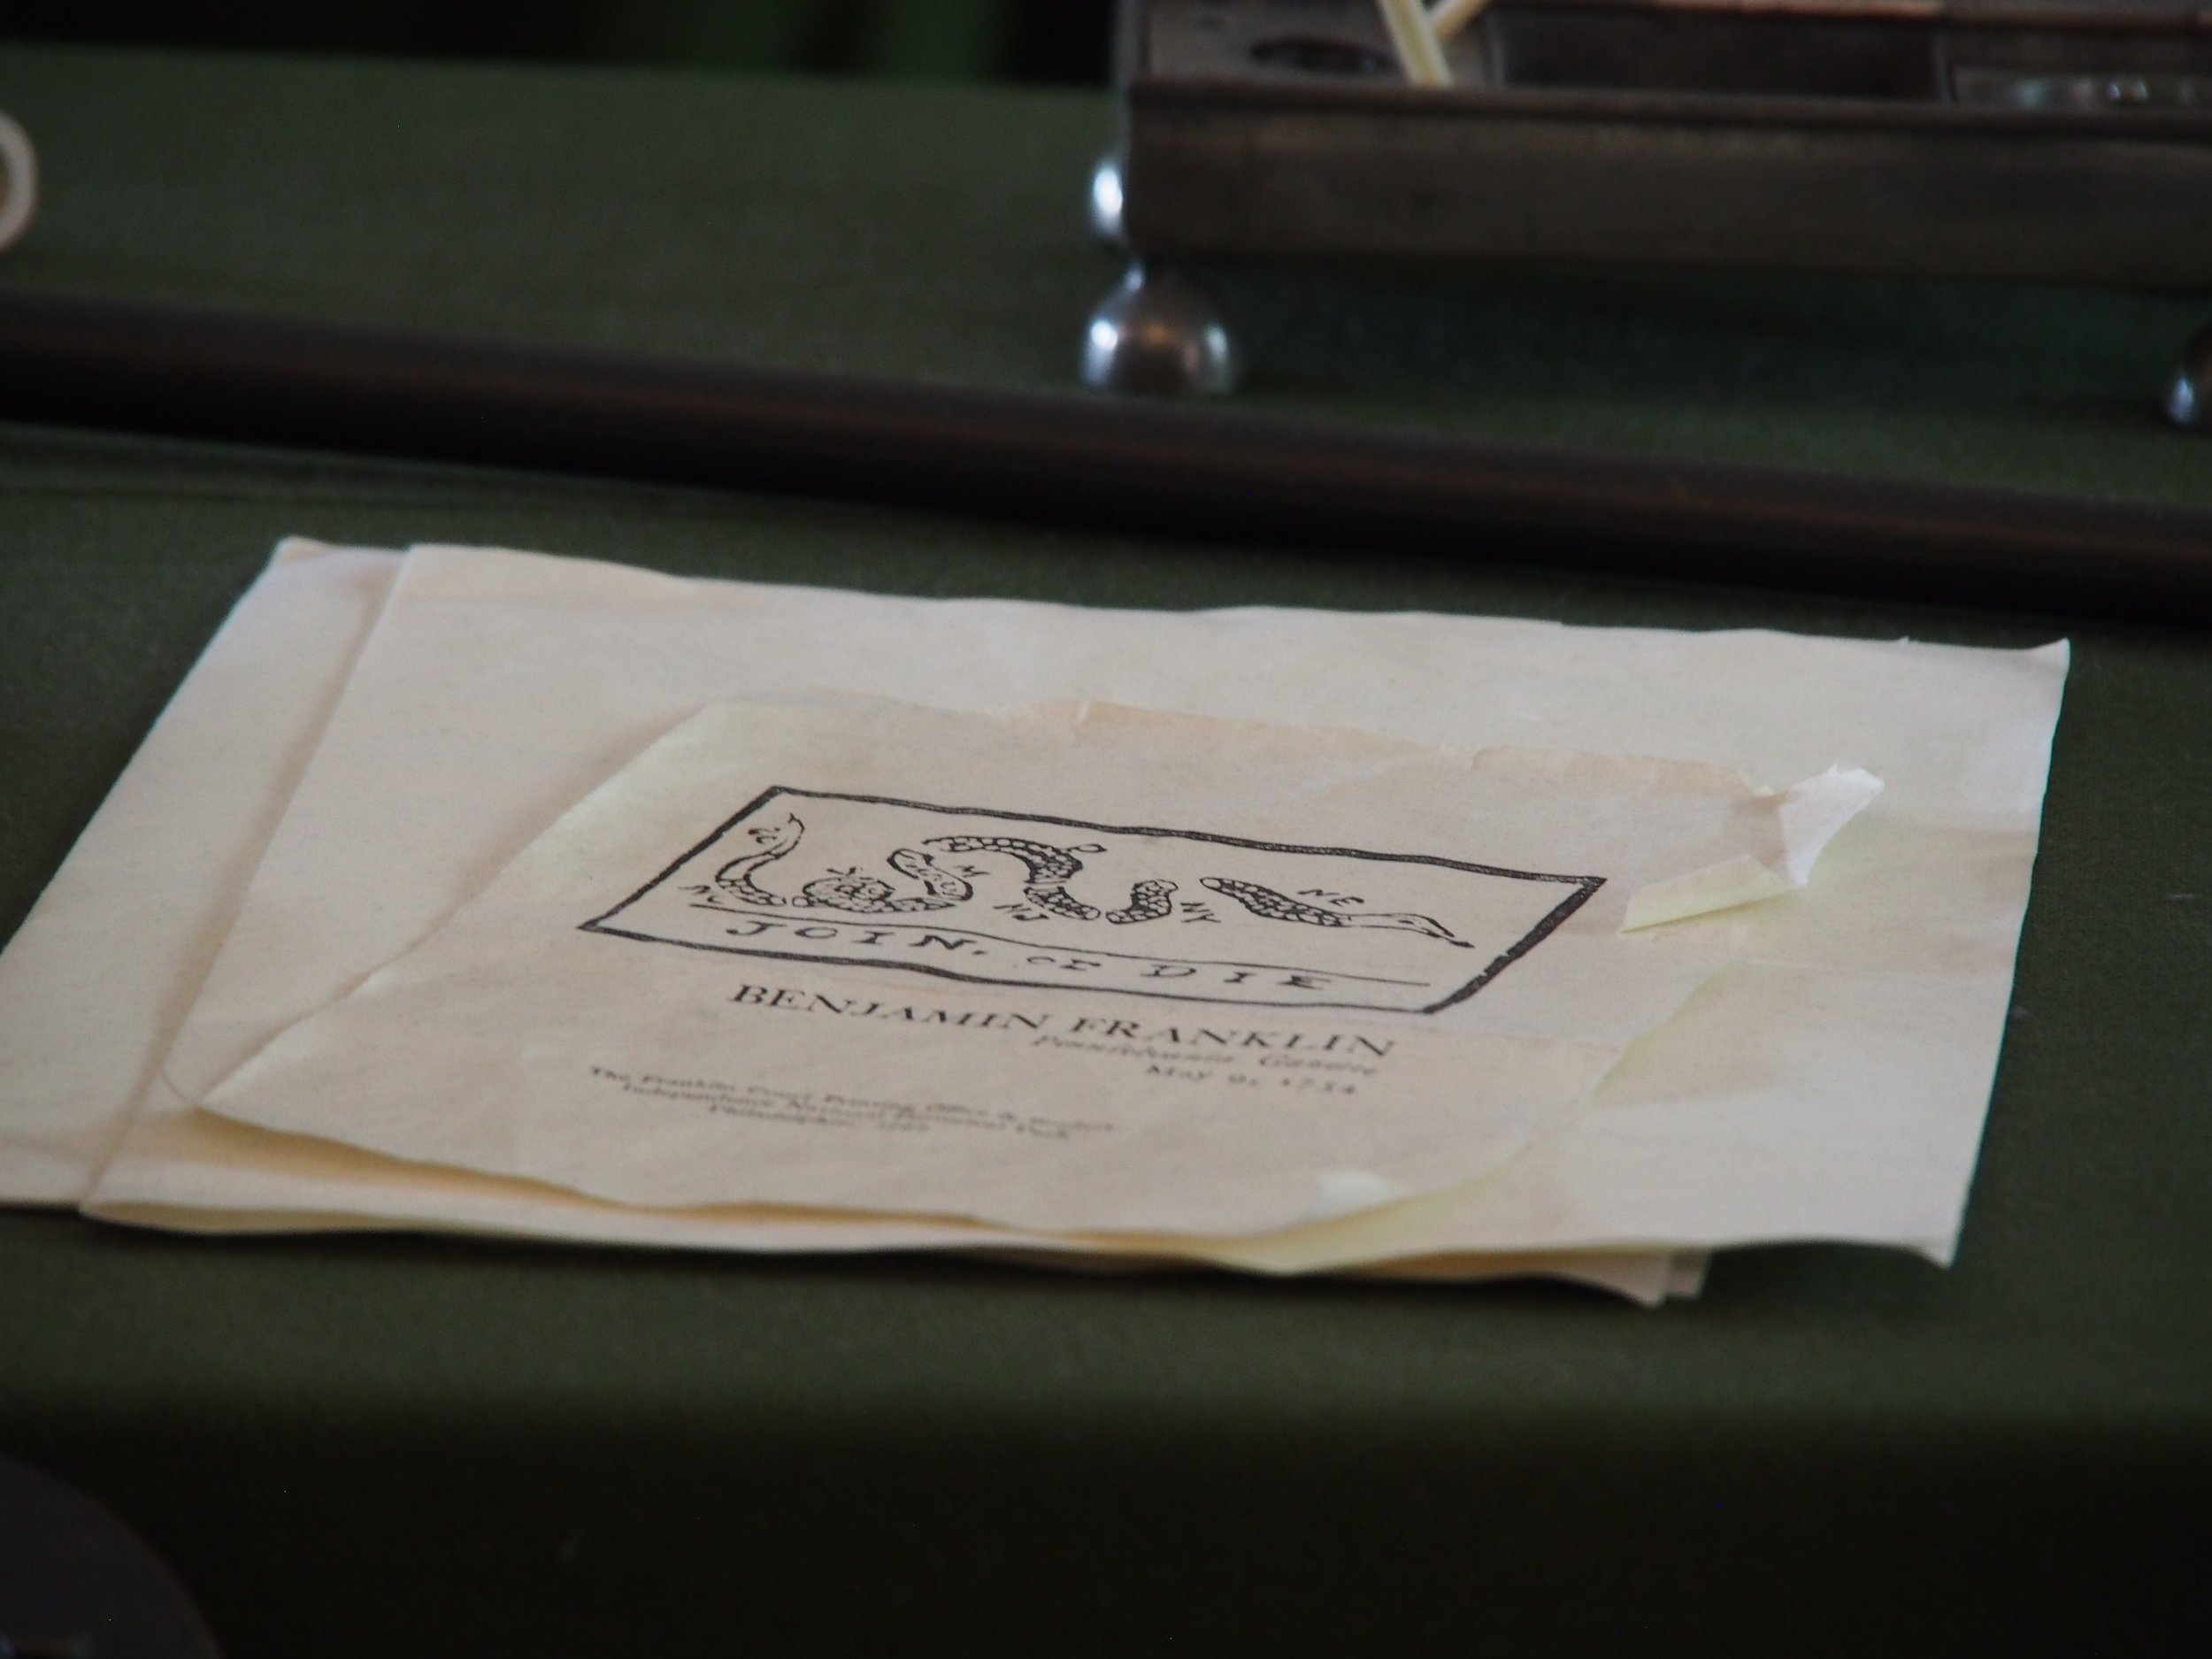 Example prints from Ben Franklin